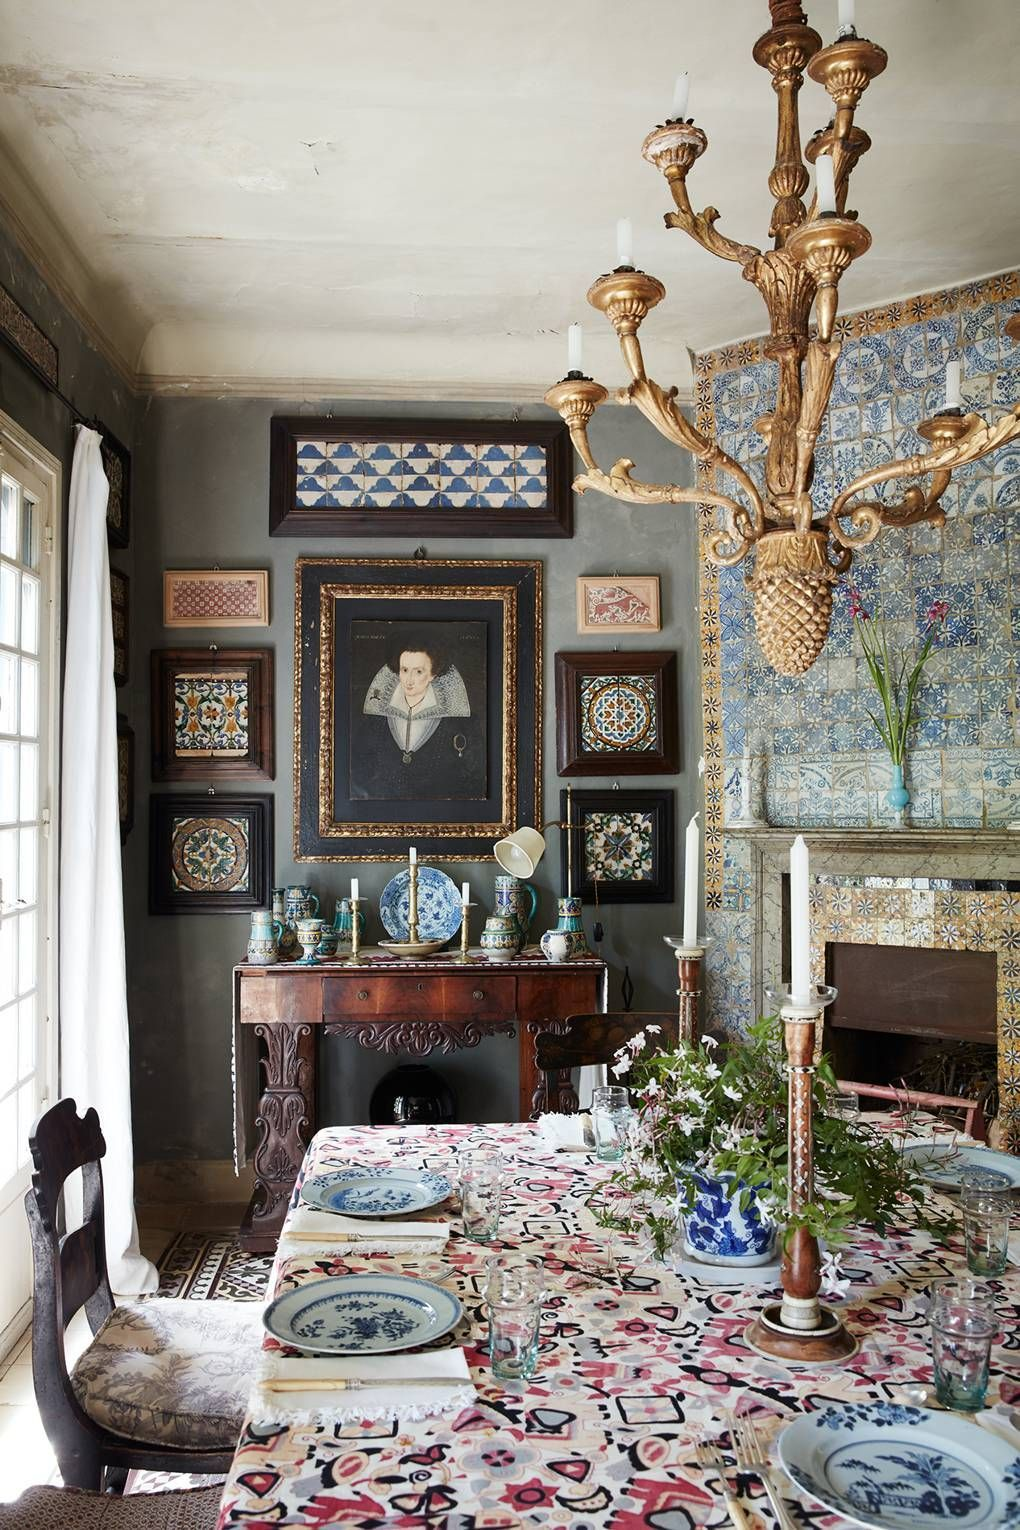 The Best Moroccan Dining Room Decor Ideas 15